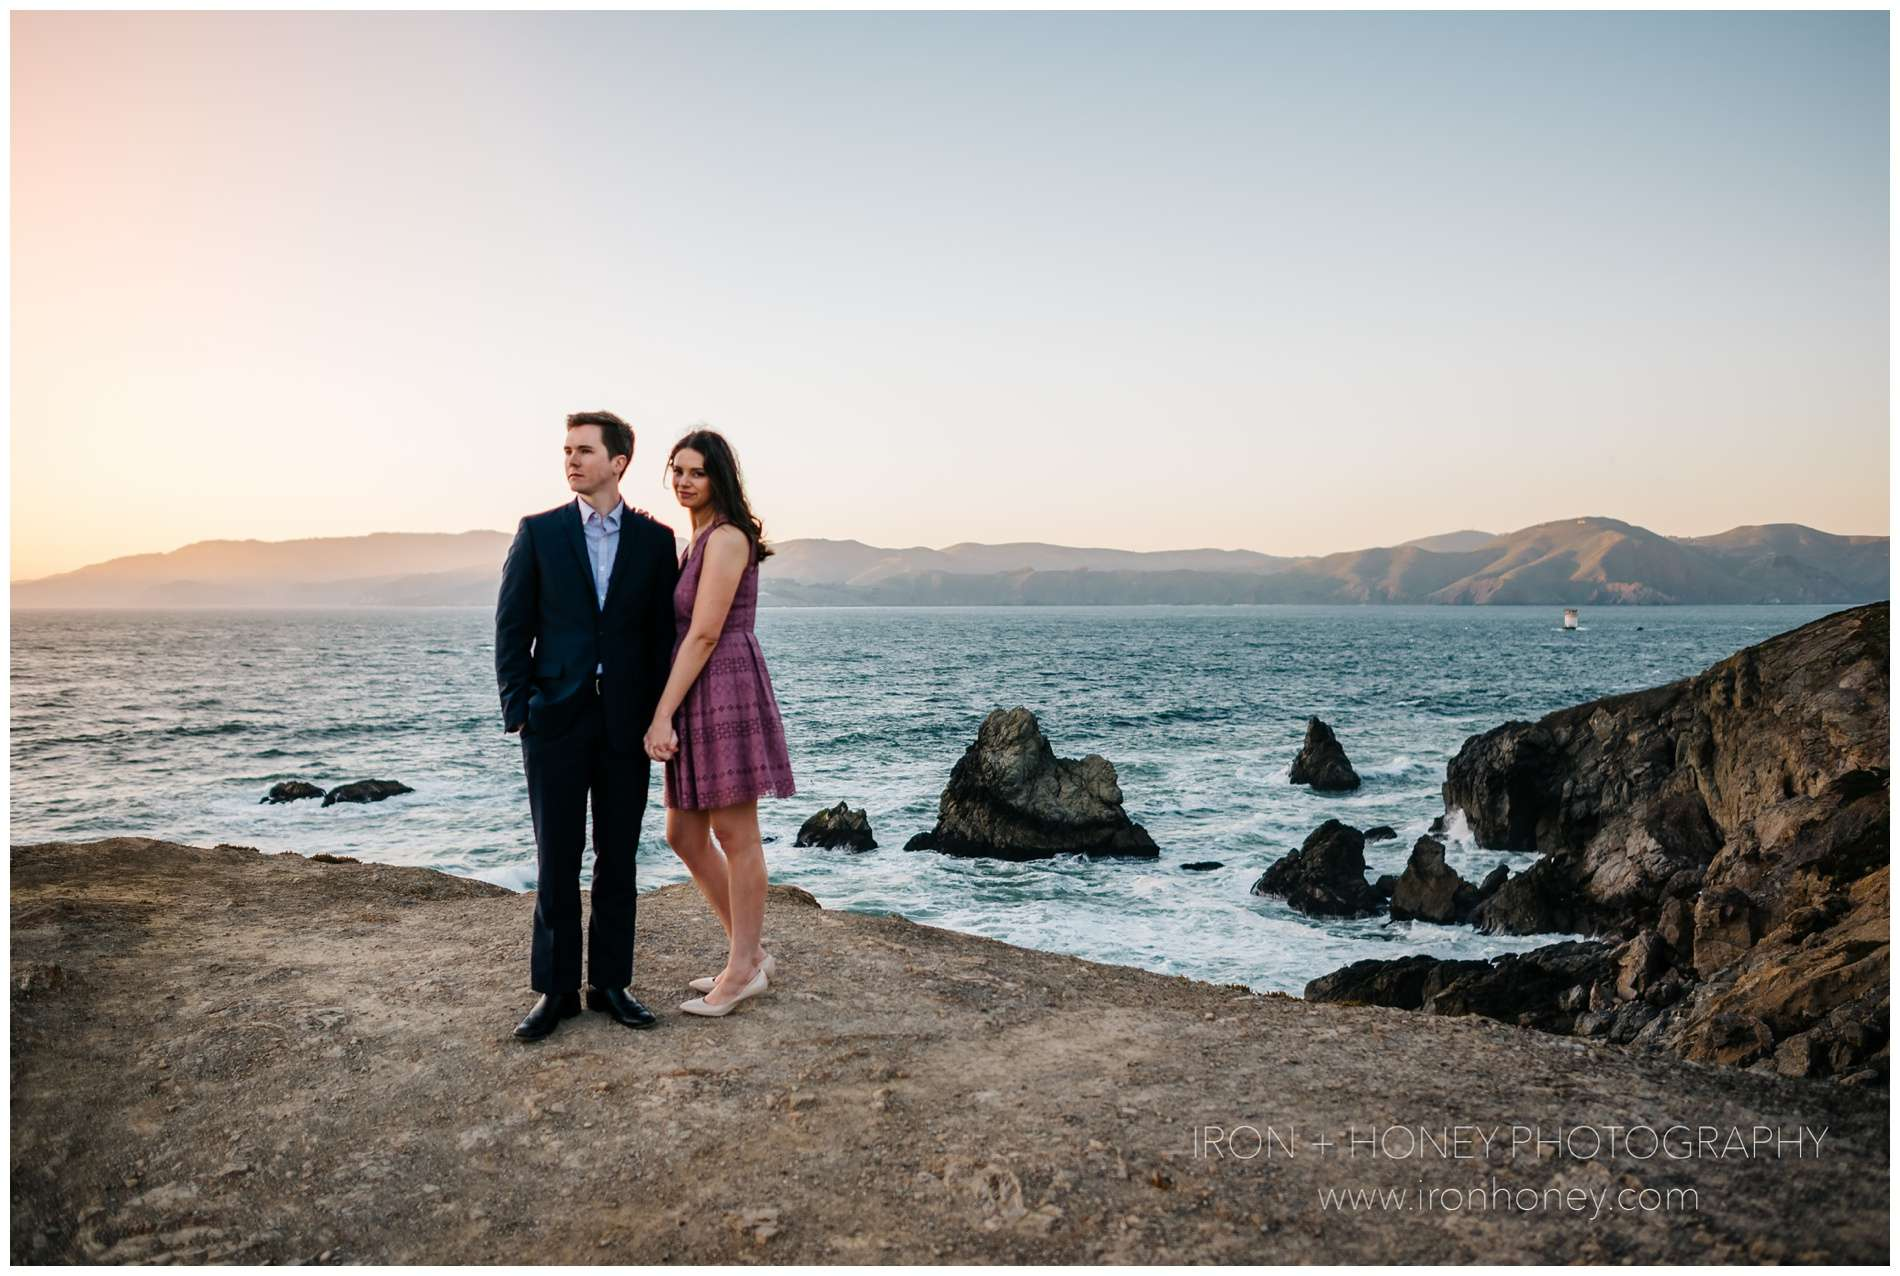 California Redwood Forest, Sutro Baths Engagement, San Francisco, Sutro Baths, Redwood forest, redwood regional park, cliff house, land's end, engagement, travel, destination, wedding, elopement, photographer, photography, melissa ferrara, iron and honey, sunset, forest, woods, california, chicago, oakland